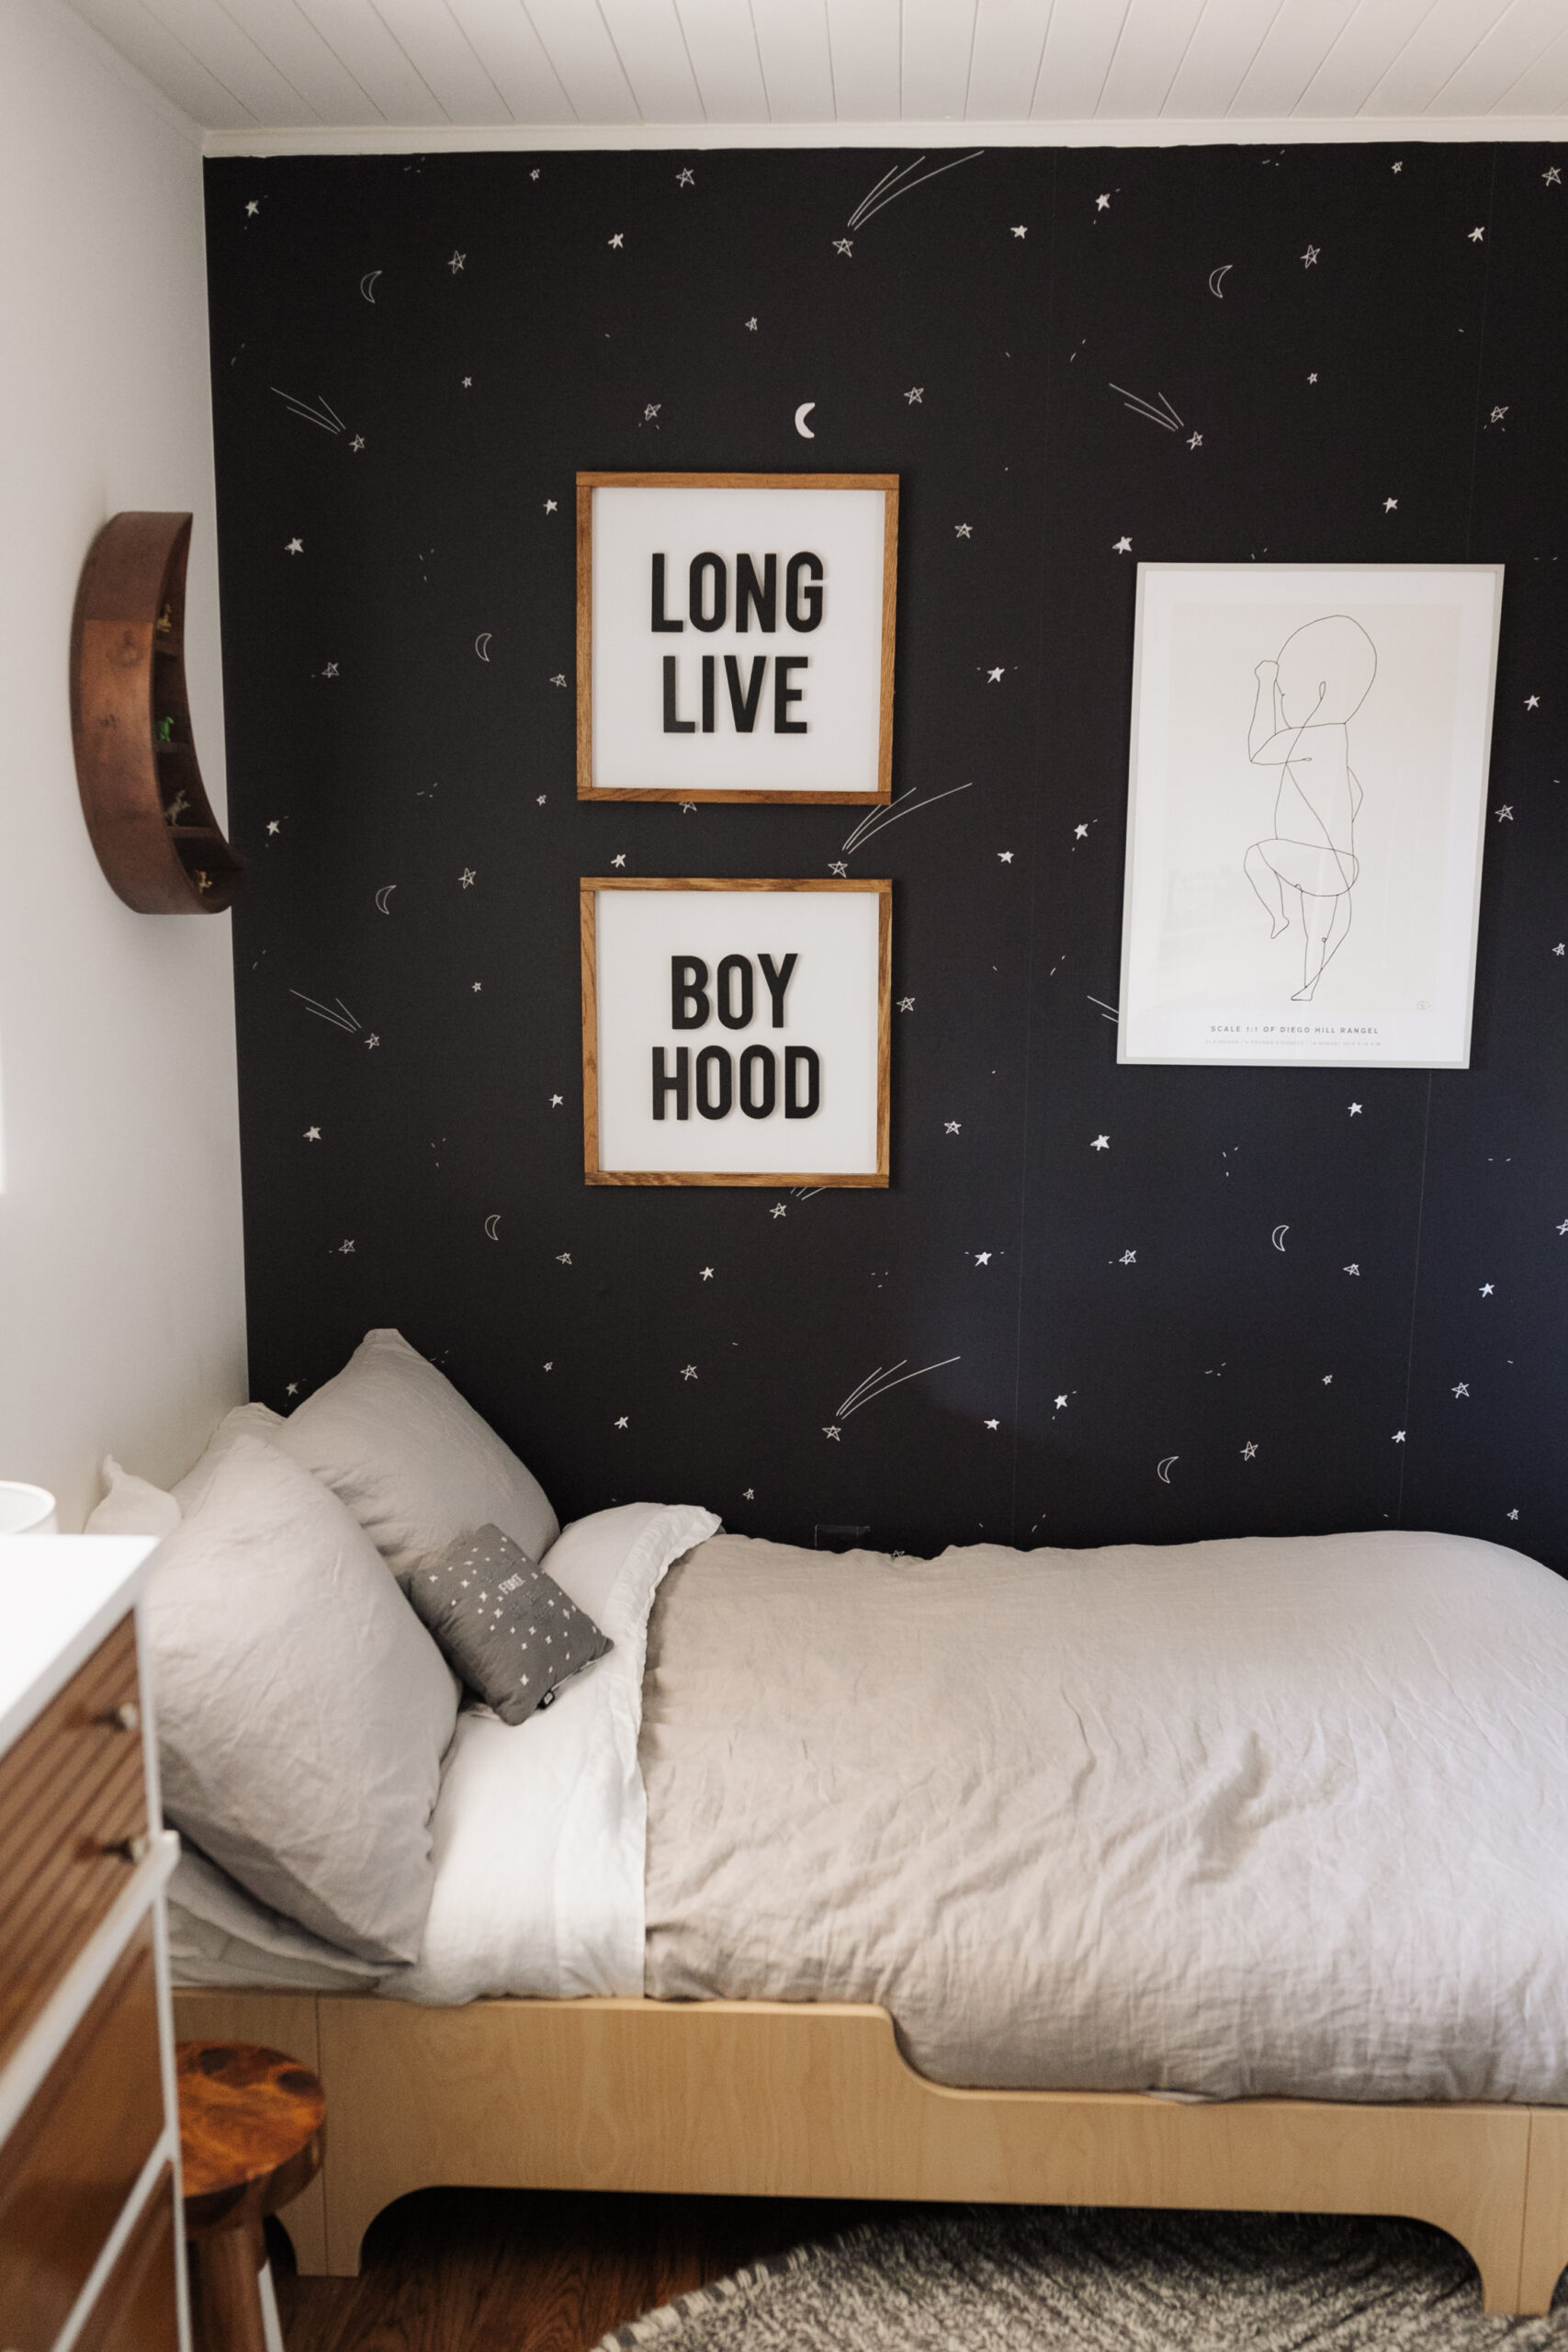 a space inspired bedroom for my big boy! I love how the wallpaper makes him feel like he is immersed in space, while cozy in his bedroom. #spaceinspiredbedroom #bigboyroom #boysbedroom #homedesign